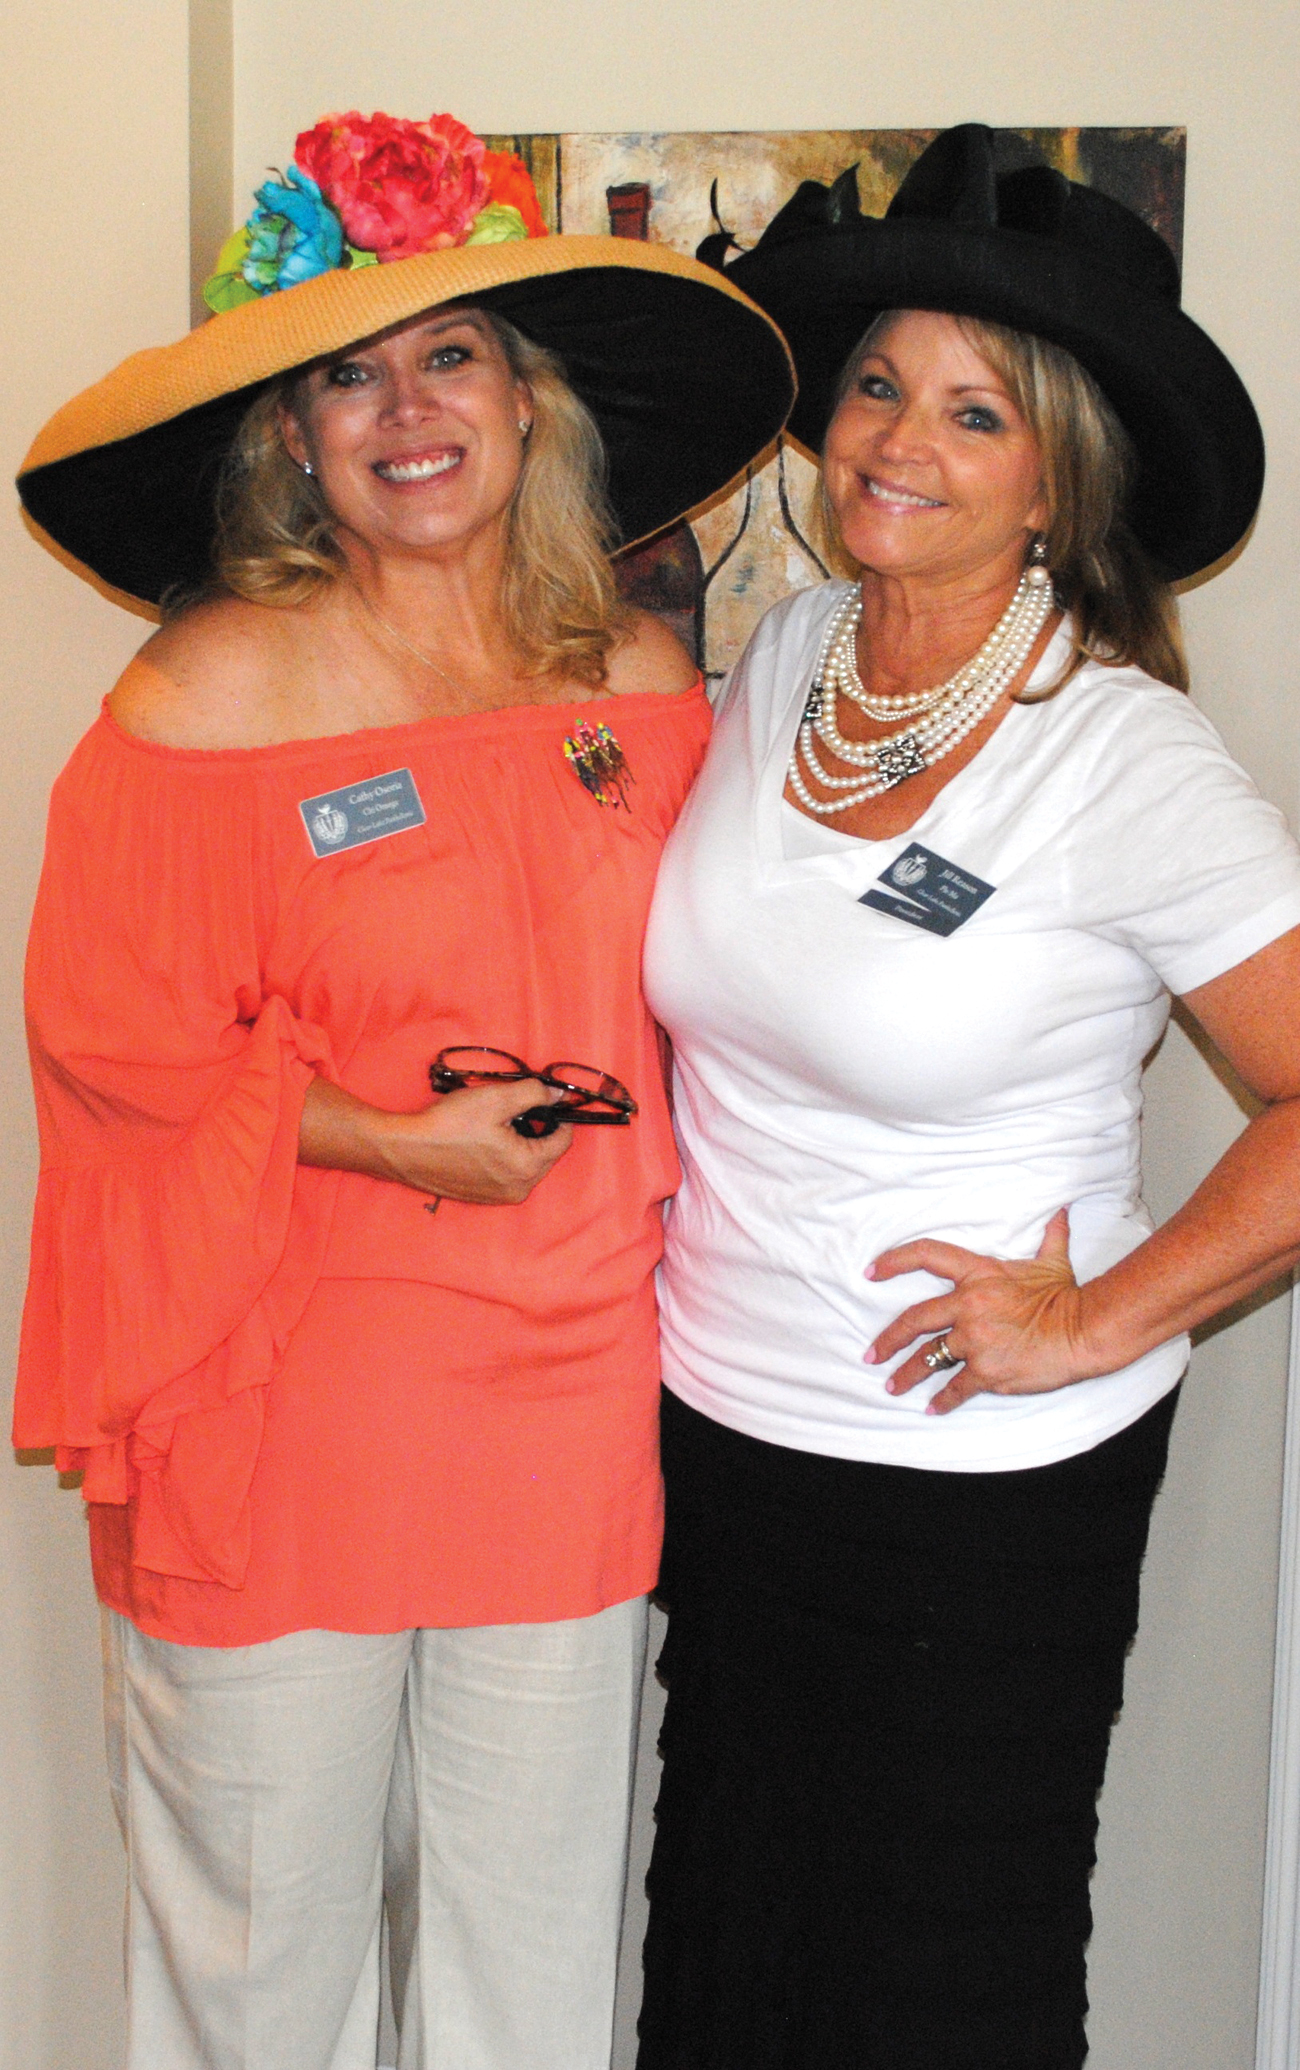 Clear Lake Area Panhellenic President Jill Reason, right, and hostess Cathy Osoria prepare to welcome the crowd to the Fall Friendship Tea.